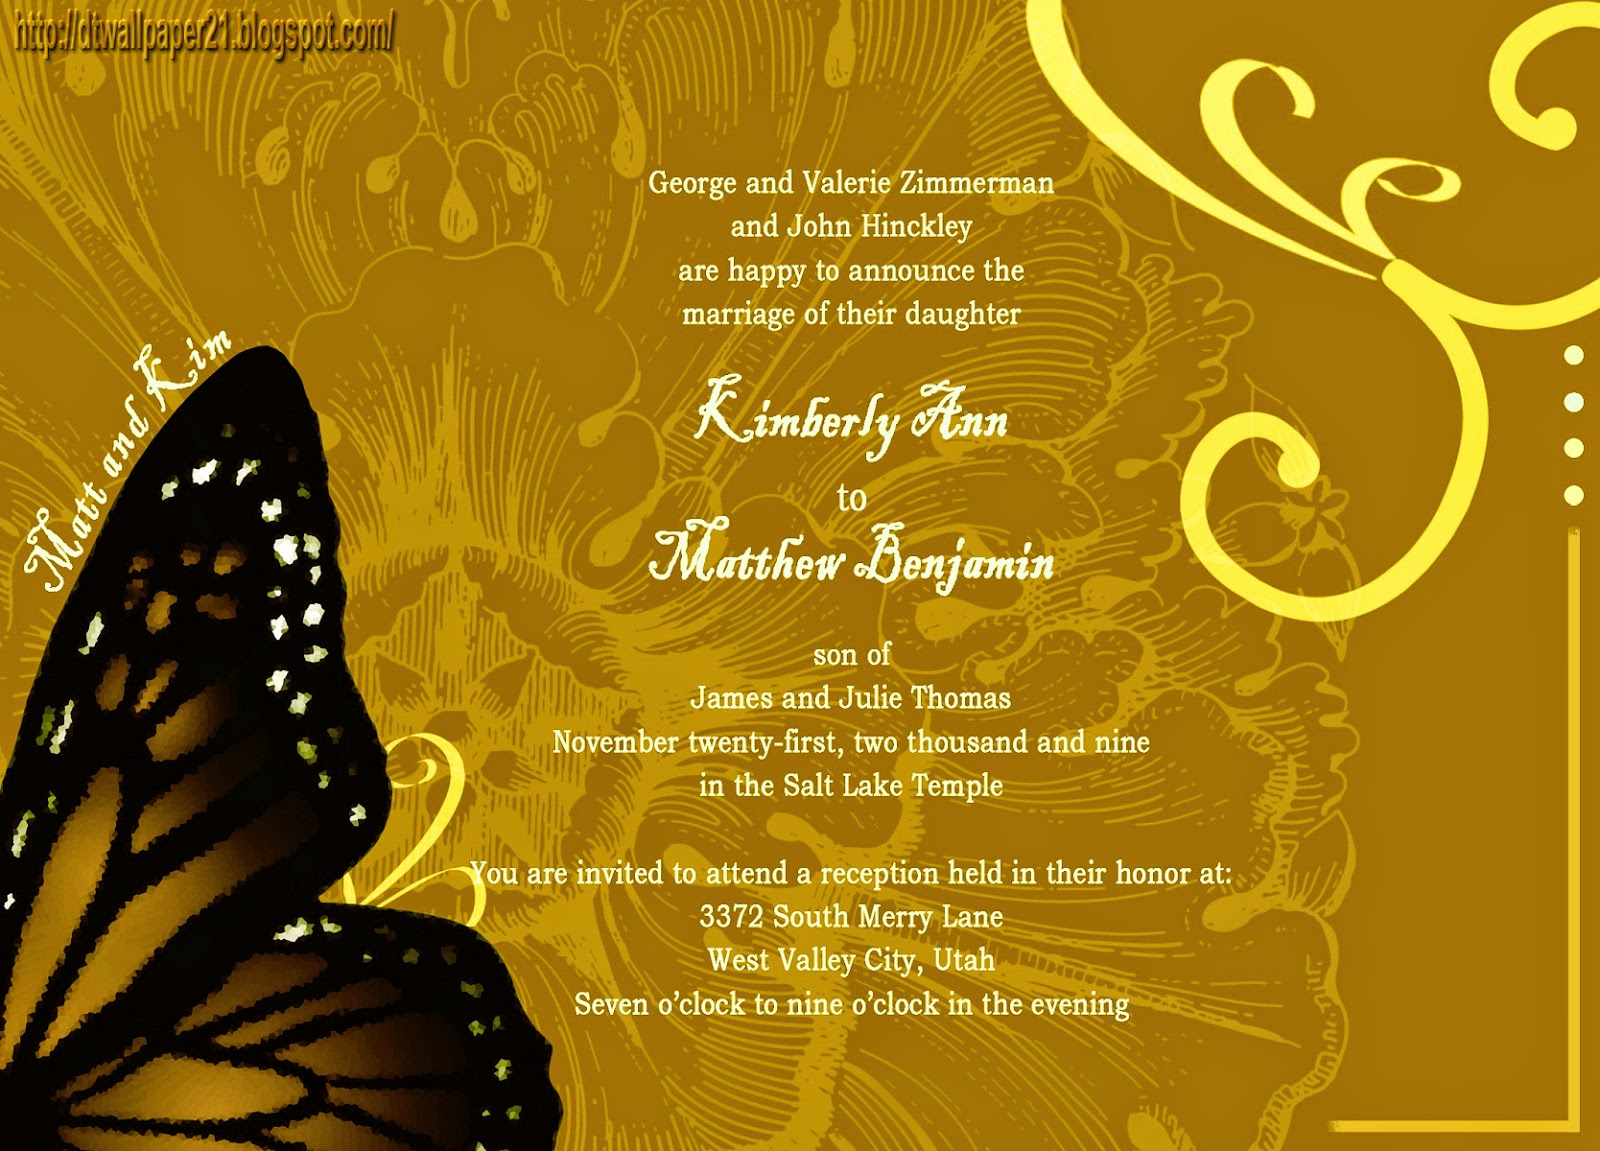 wedding invitation wording, invitation, wedding vows, shaadi, design, marriage card design, arts,